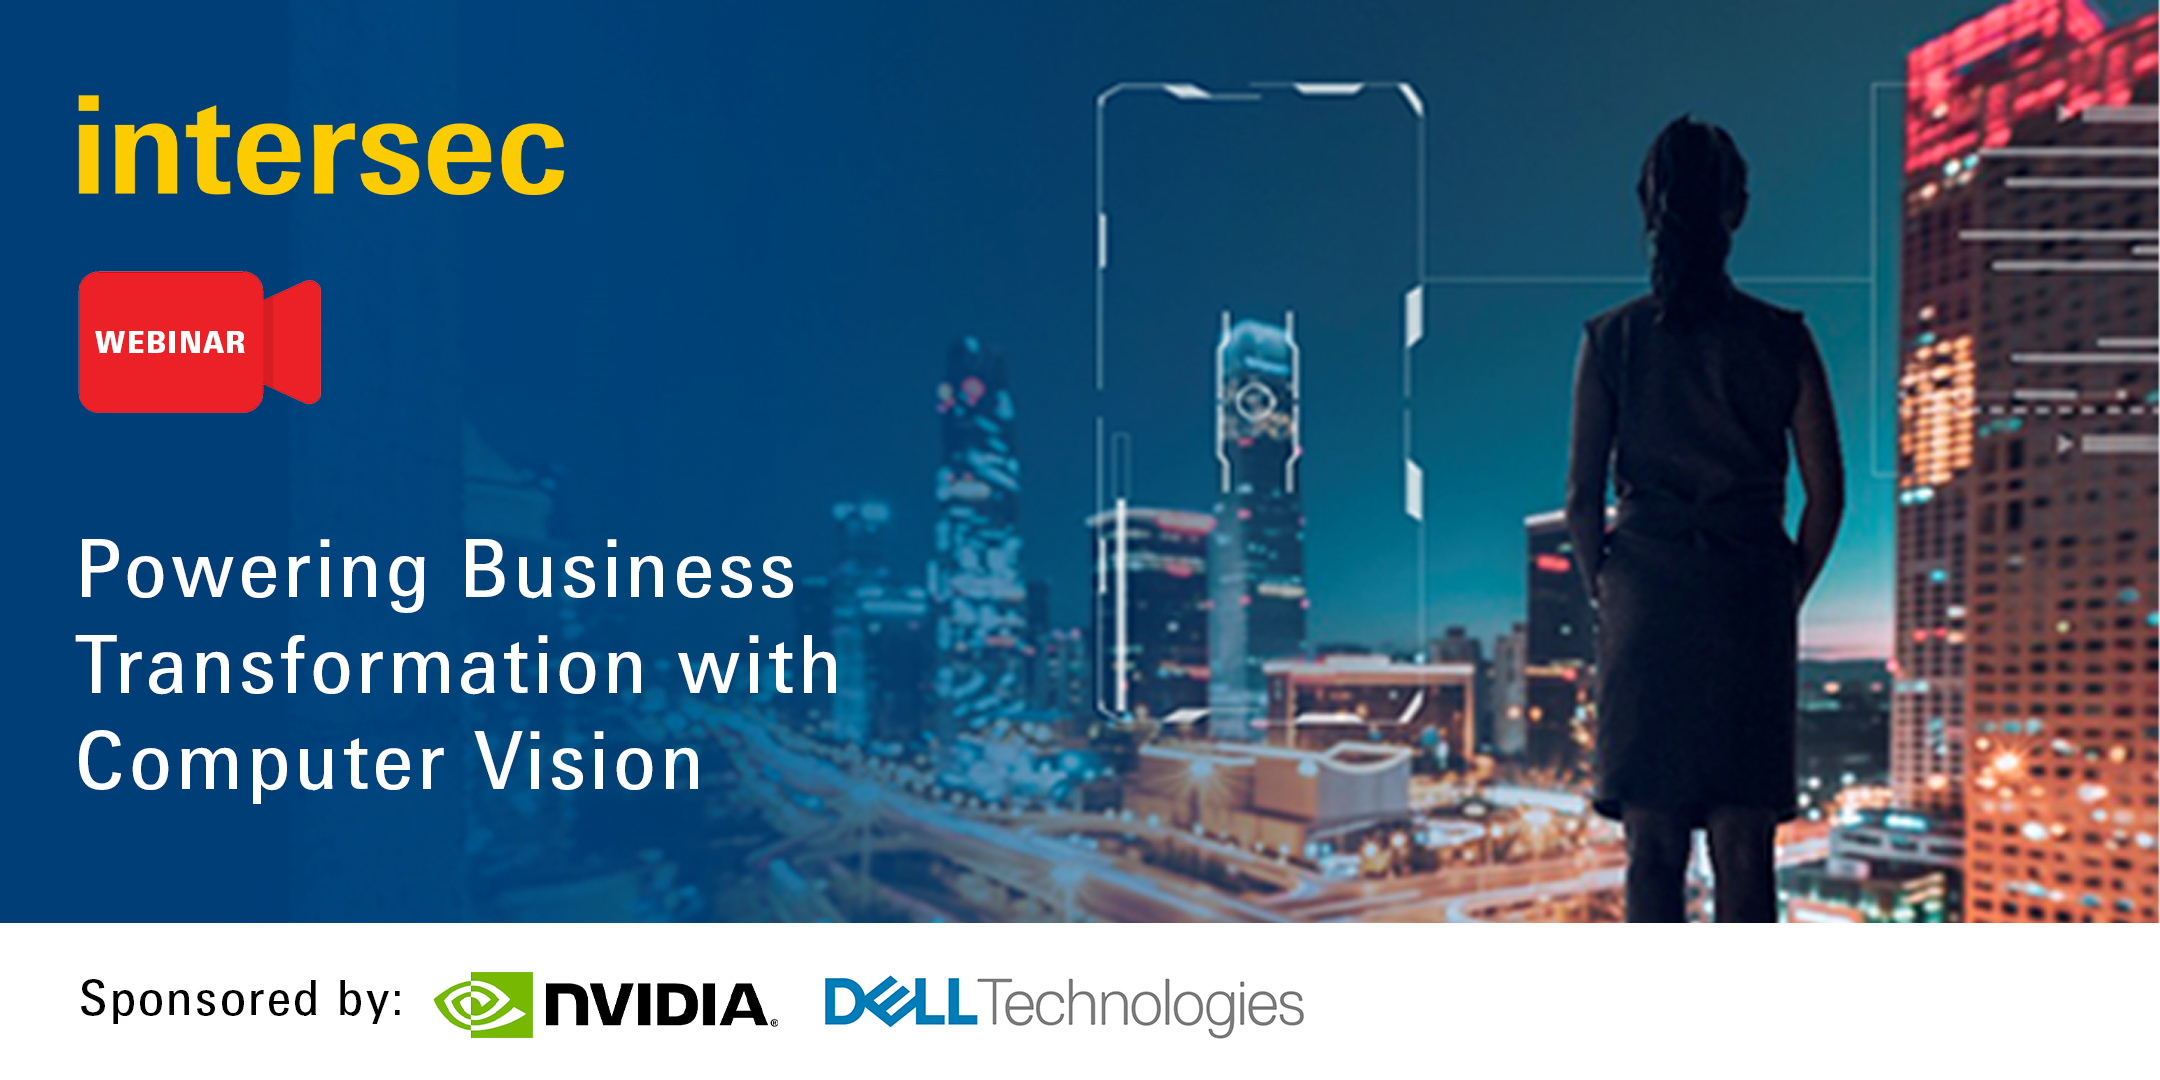 Powering Business transformation with Computer Vision